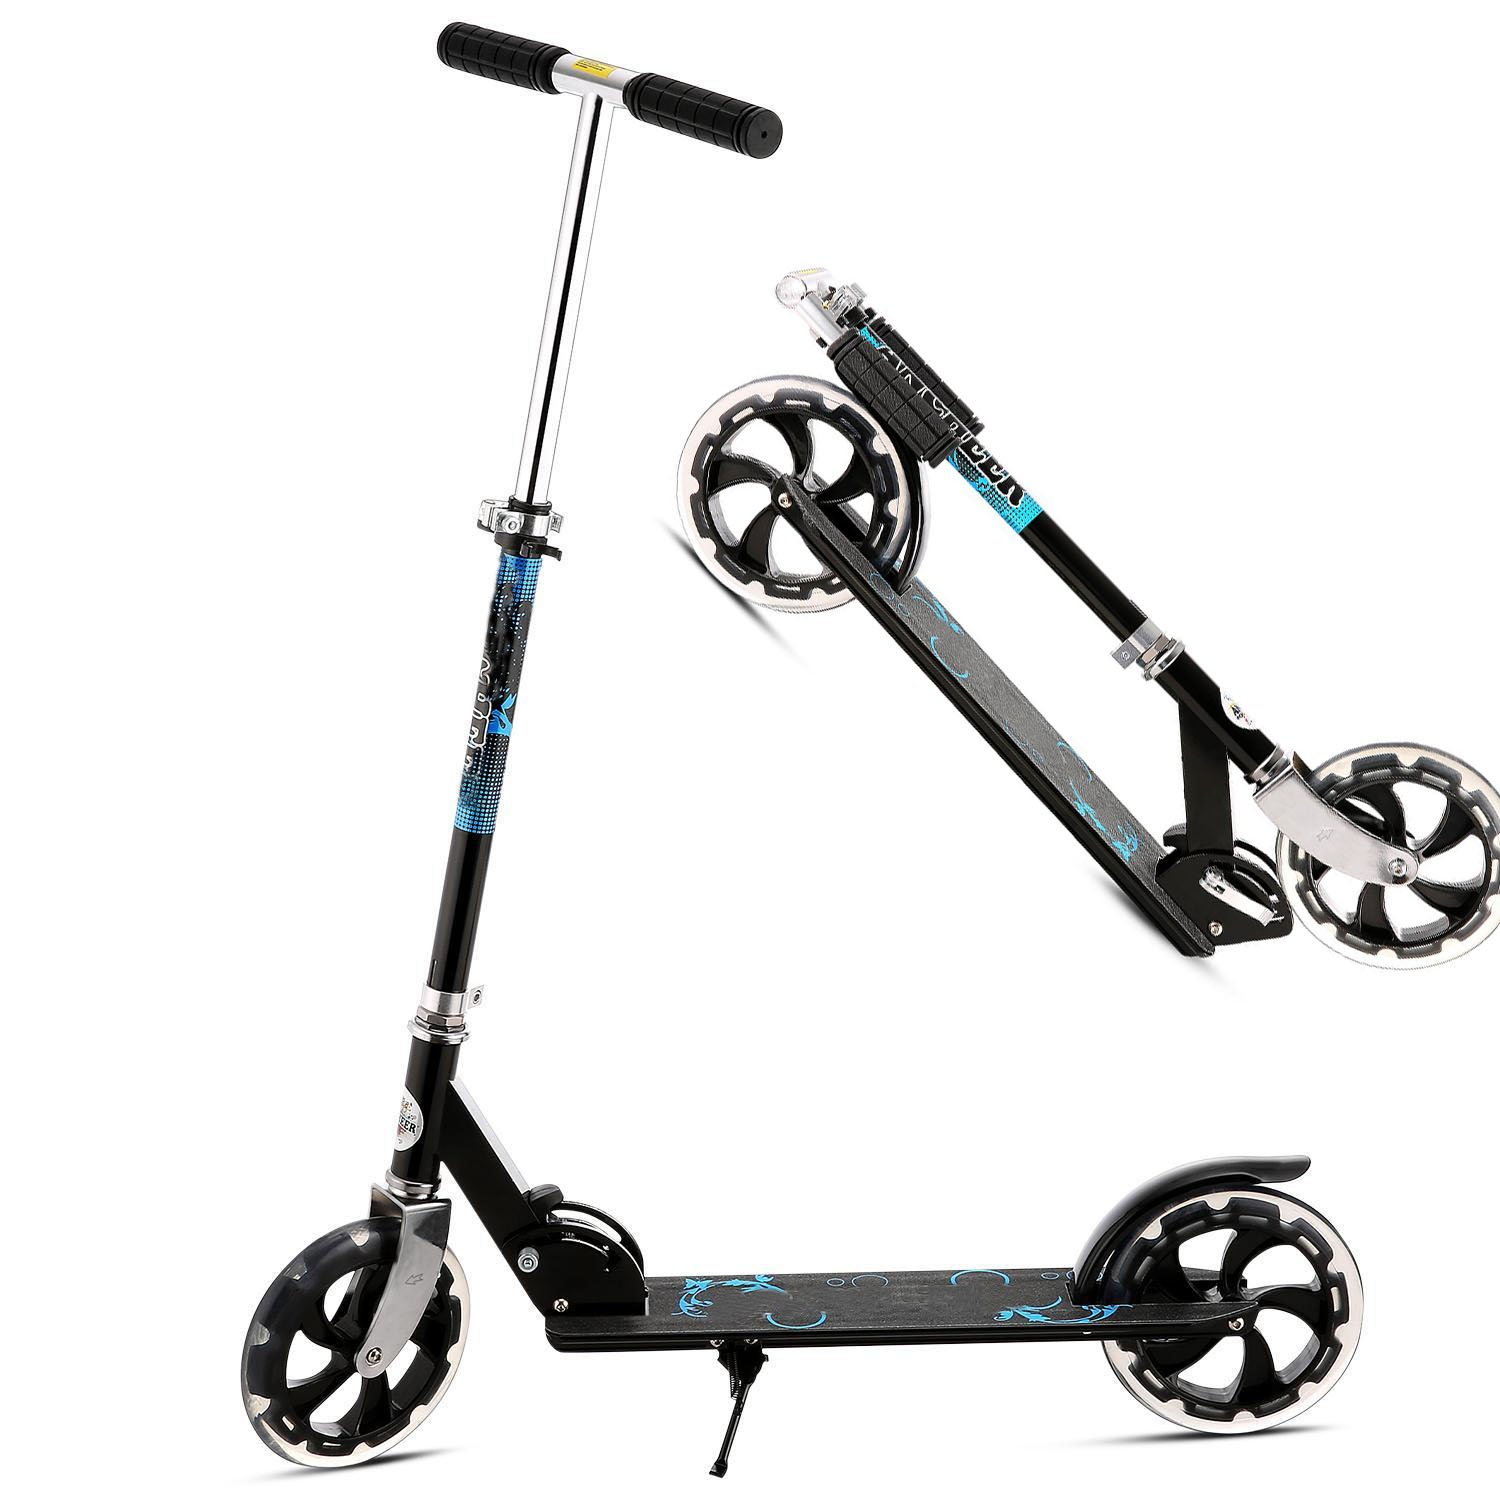 Ferty Multifunction Kick Scooter,Portable Foldable 2 Wheel Mini Scooter with Adjustable Handlebars [US STOCK]